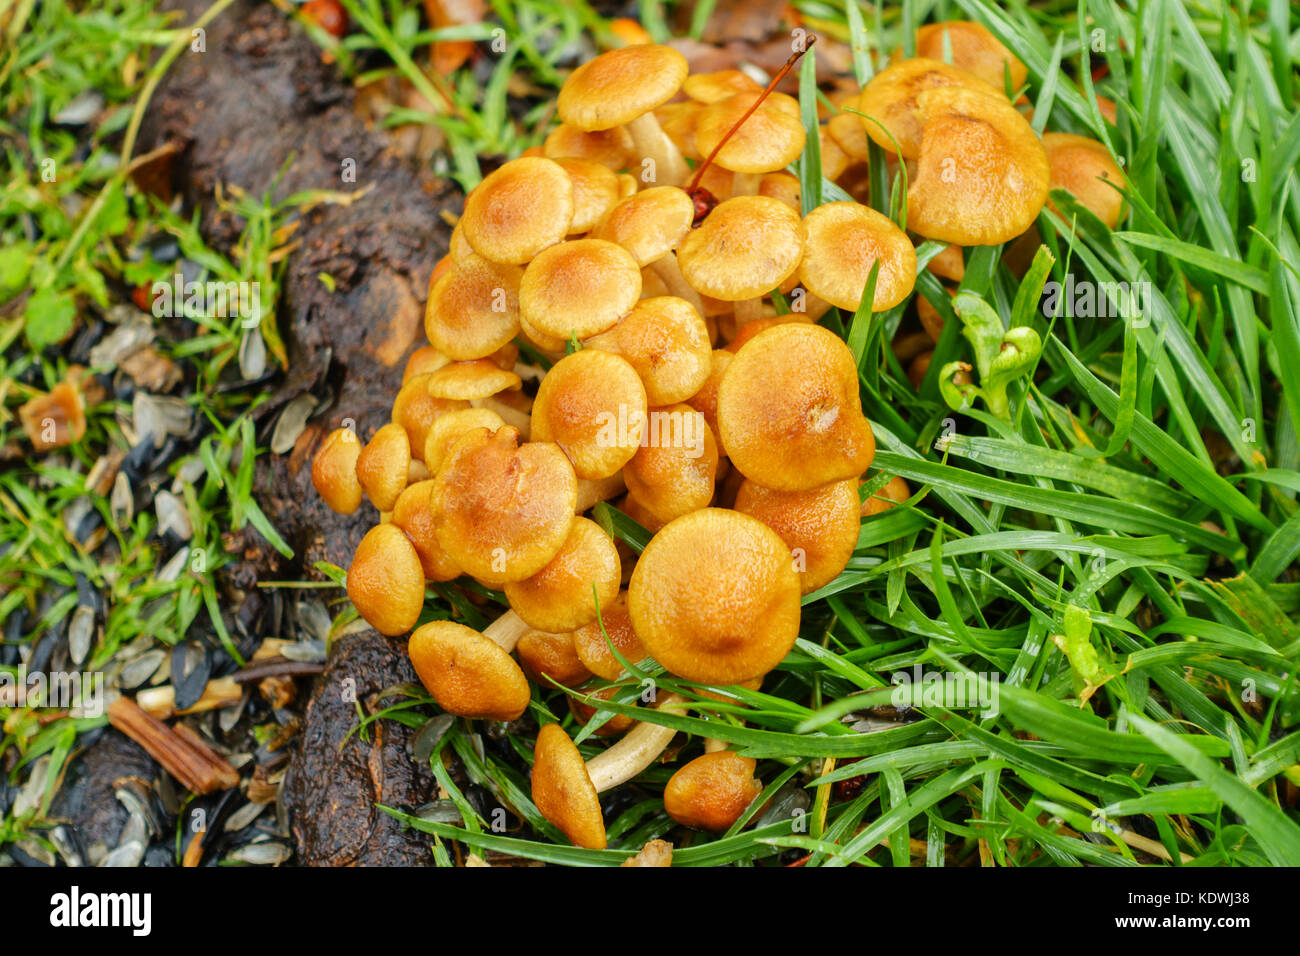 A patch of Honey fungus mushrooms, Armillaria mellea, growing around Crabapple, malus, tree roots in an urban lawn - Stock Image